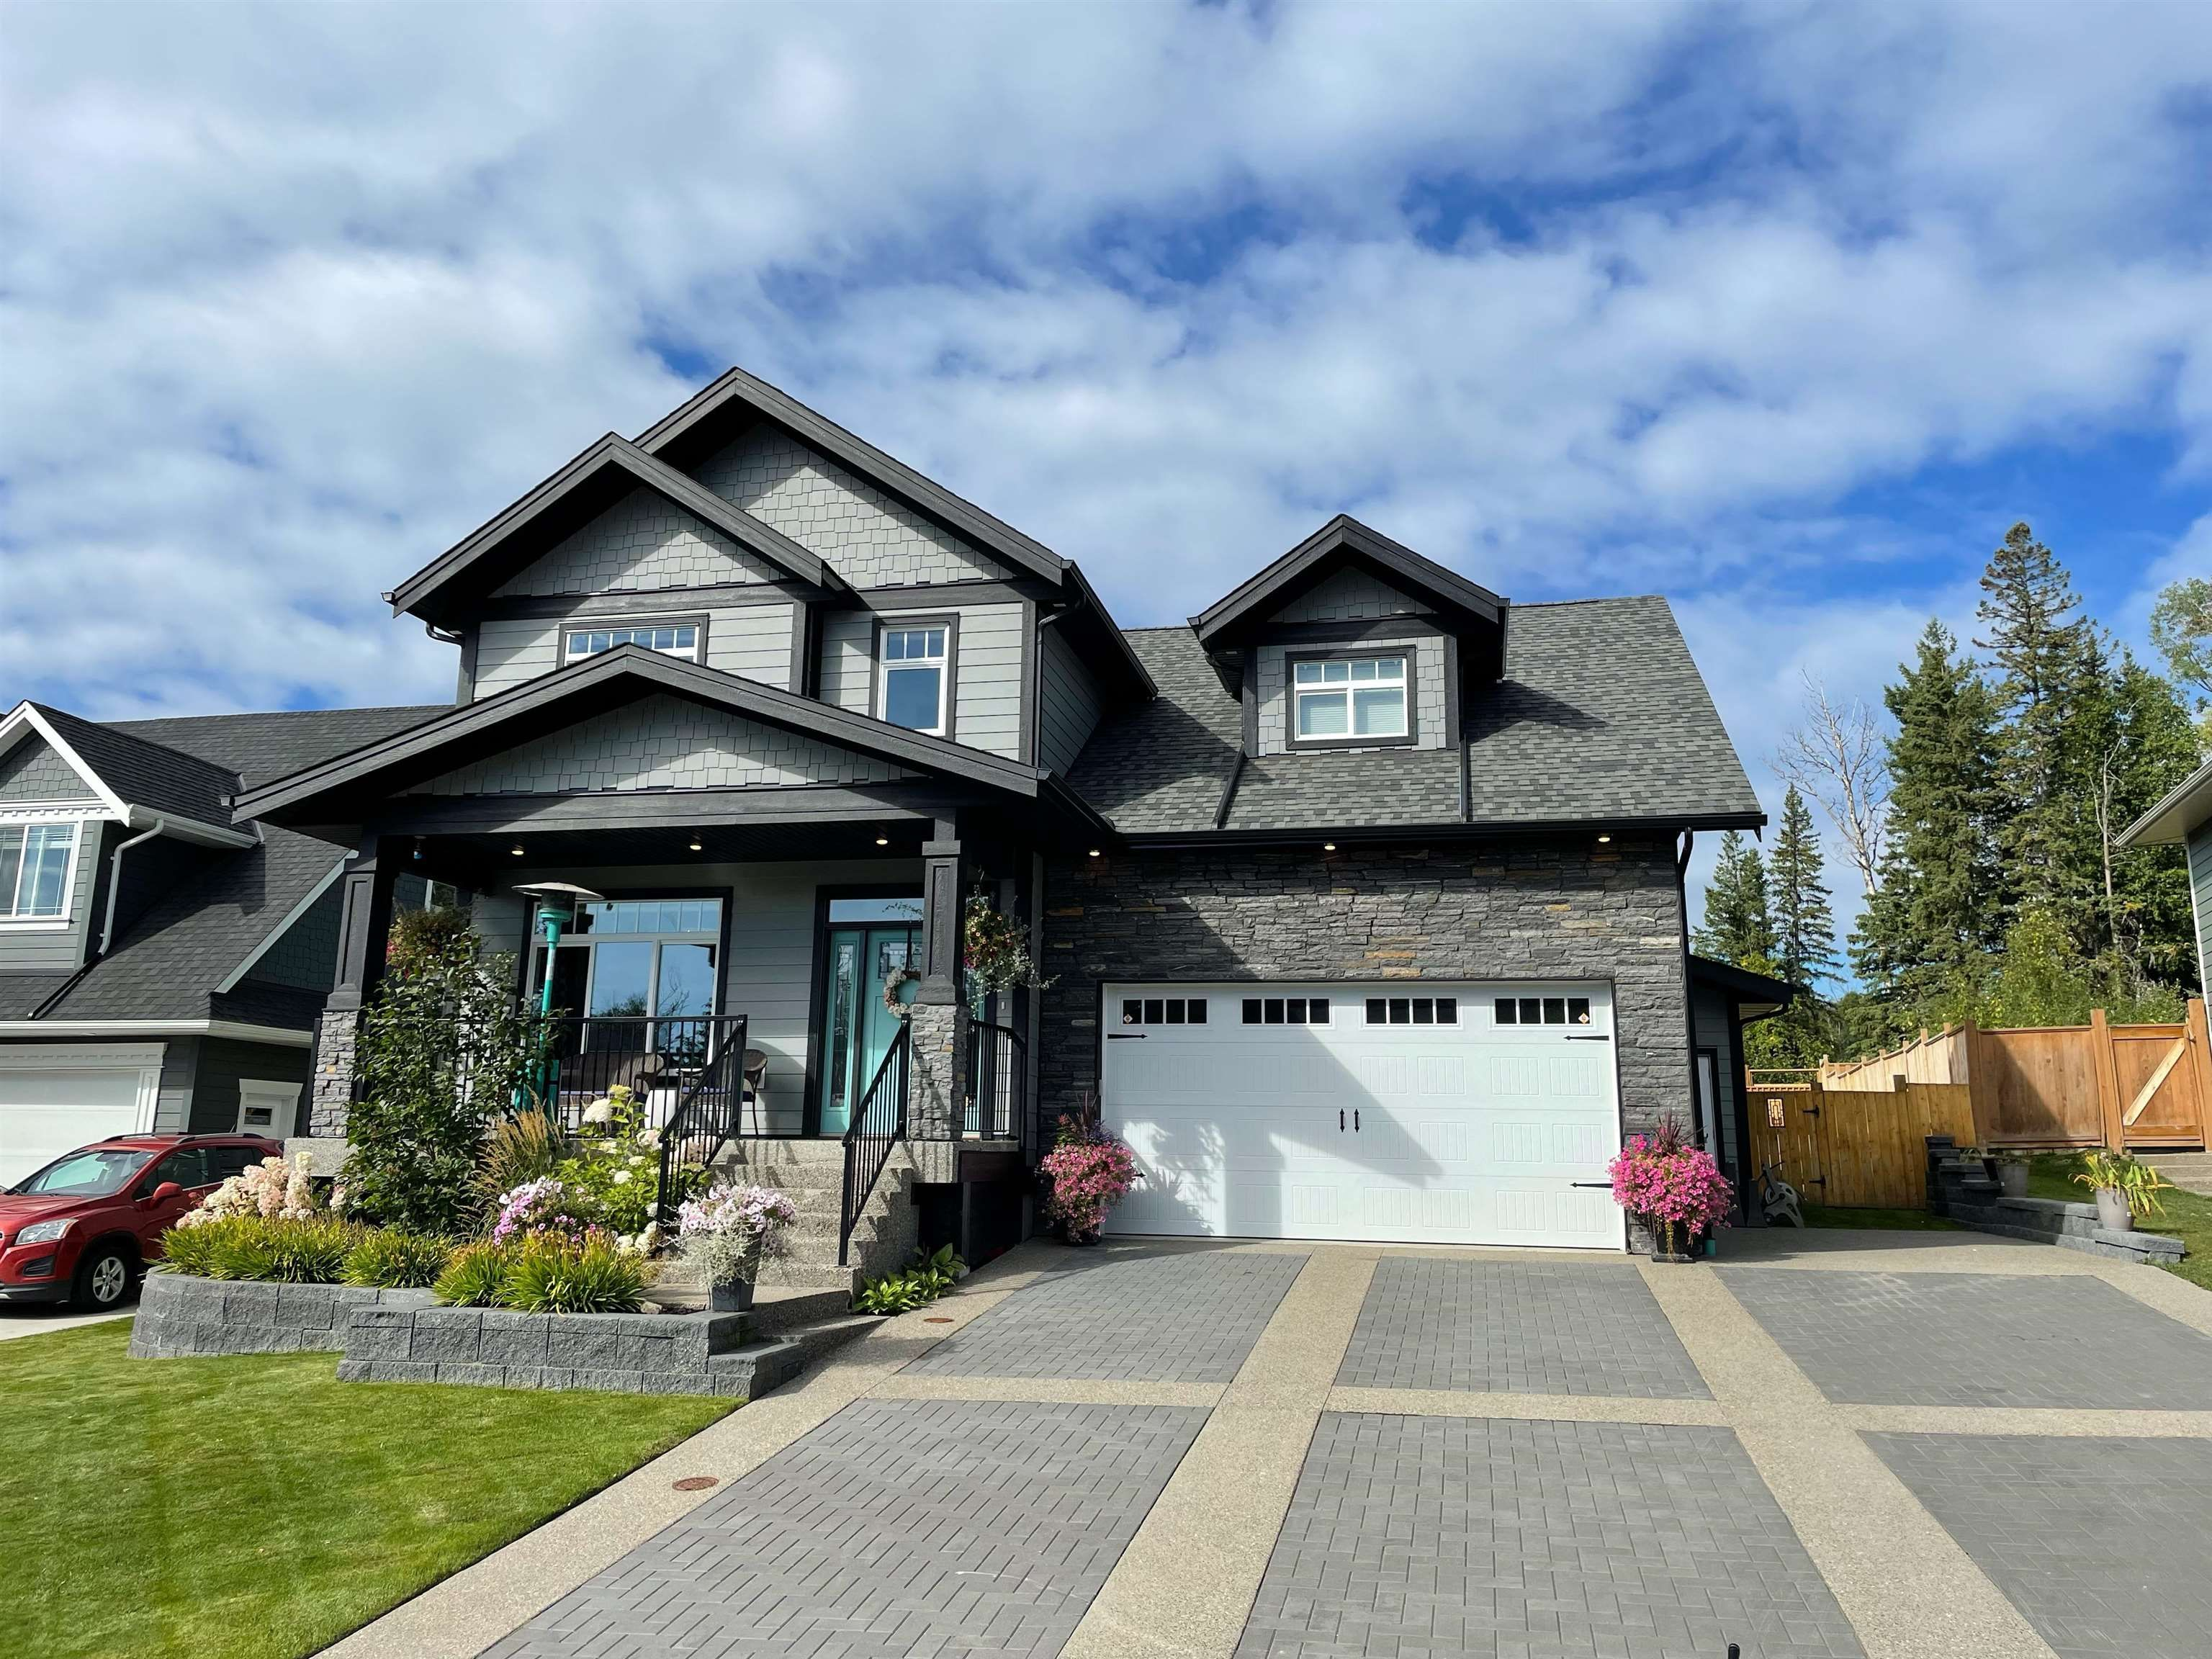 Main Photo: 3053 MAURICE Drive in Prince George: Charella/Starlane House for sale (PG City South (Zone 74))  : MLS®# R2614544